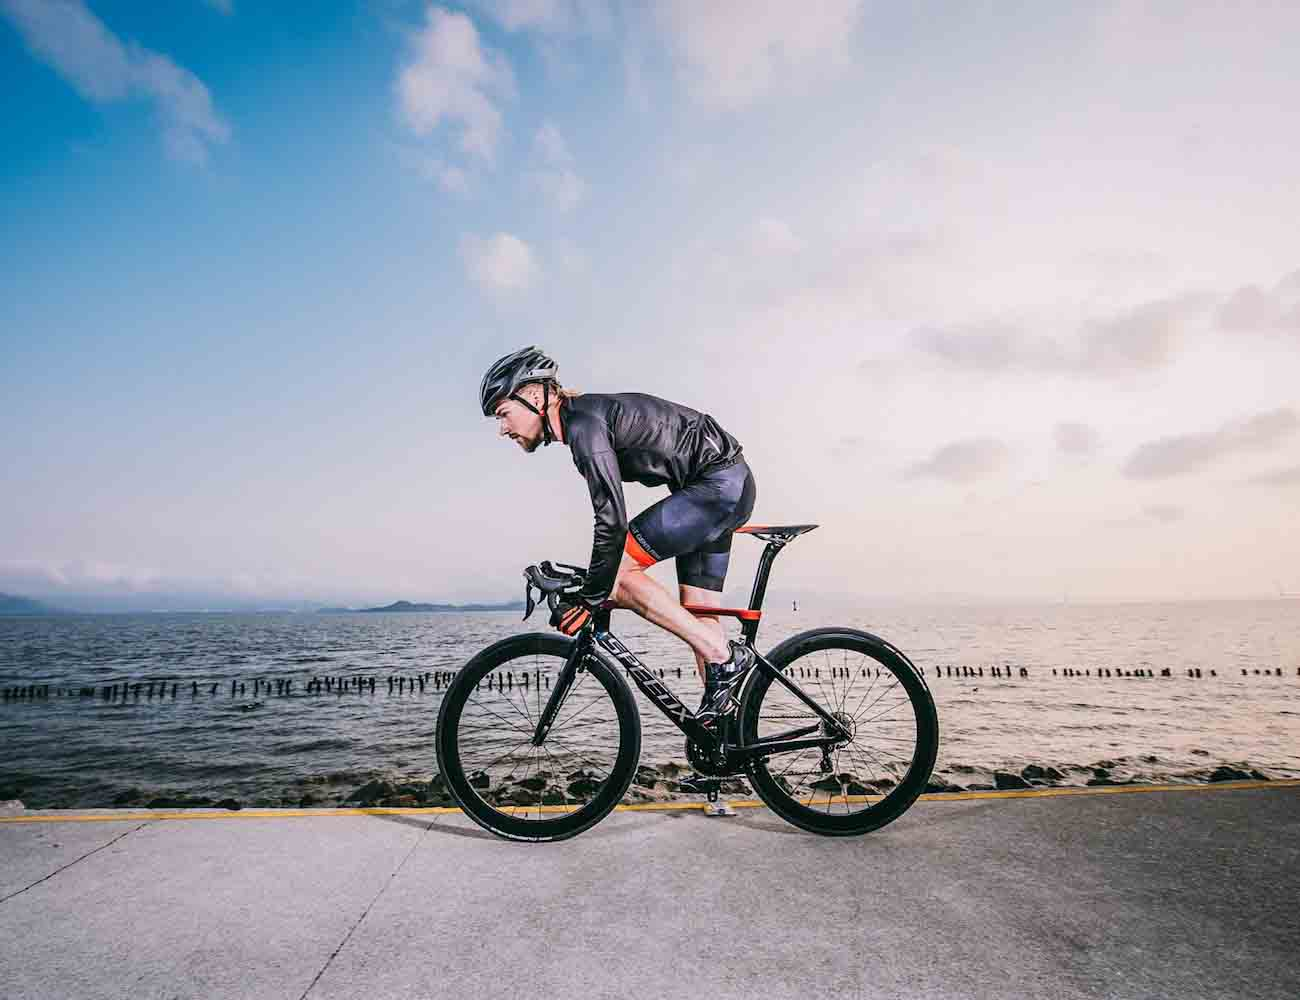 SpeedX Leopard – The First Ever Smart Aero Road Bike